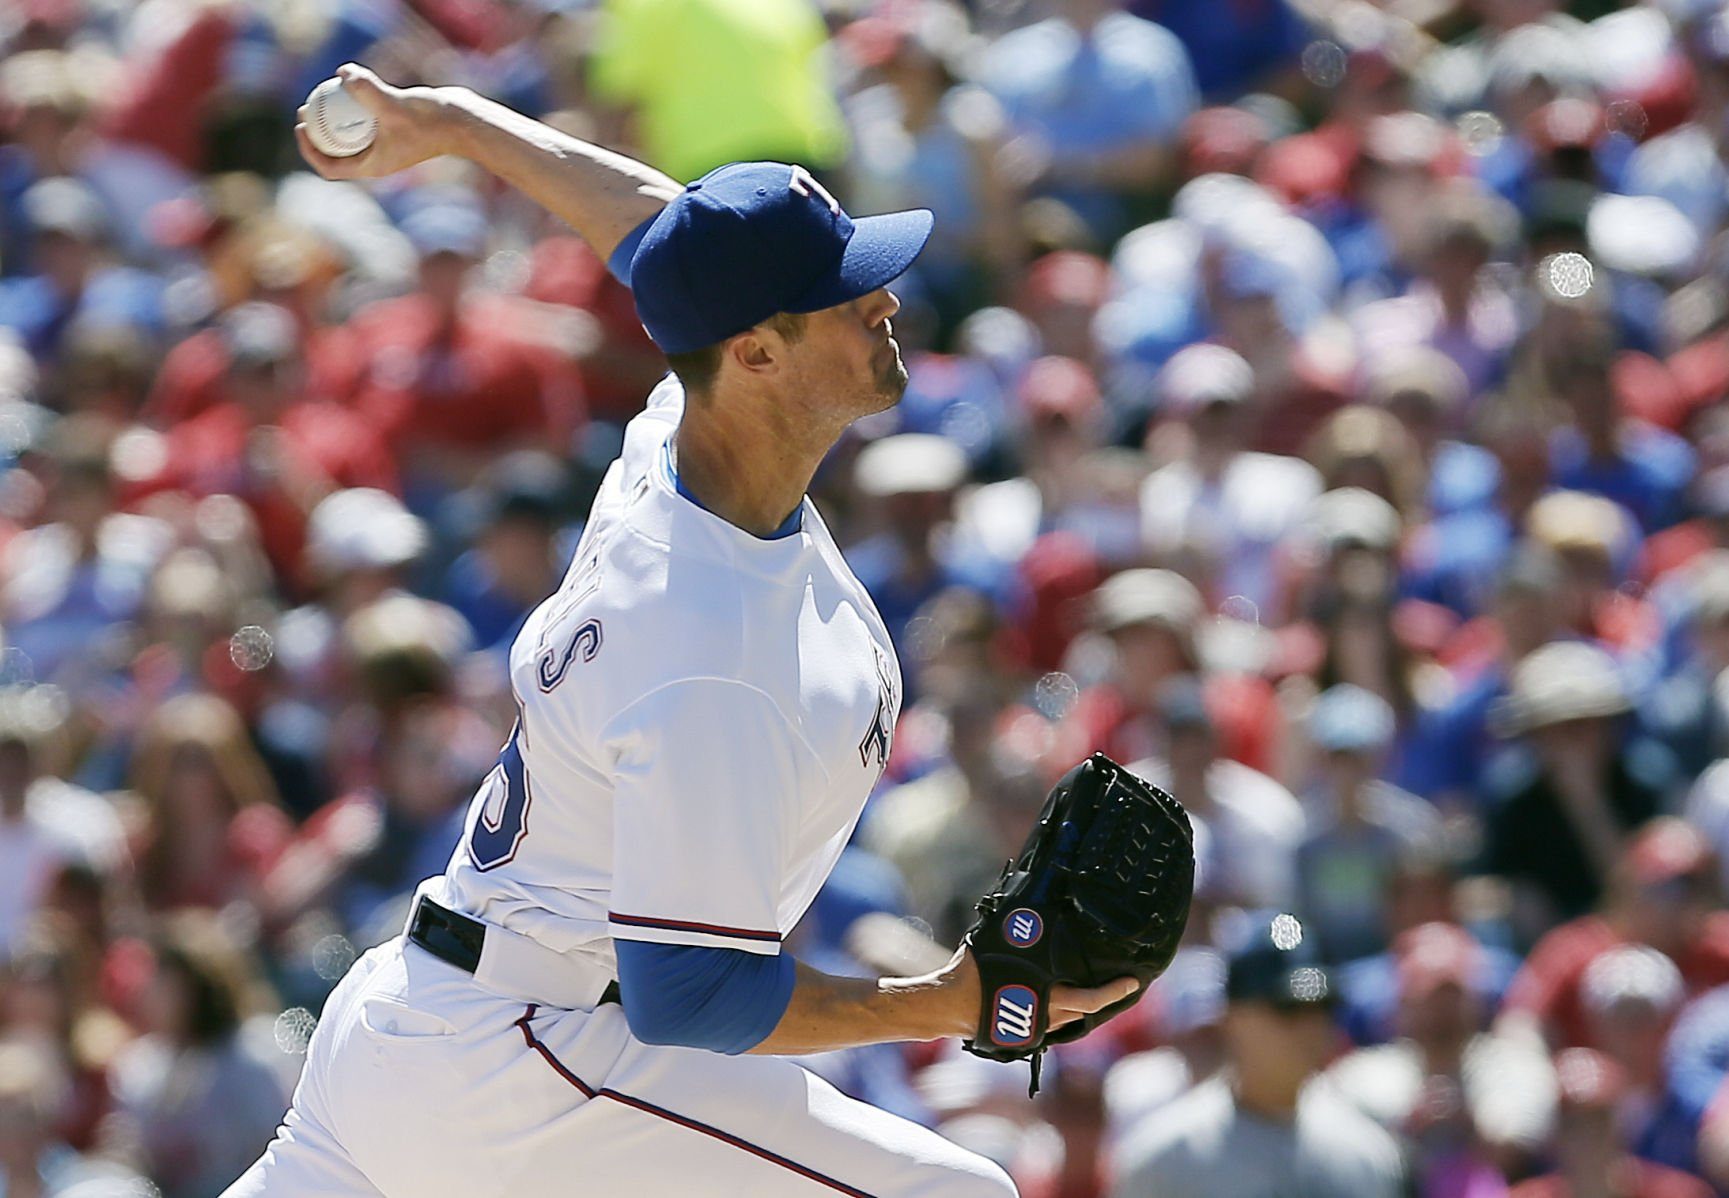 Rangers fall to Twins 8-4 as Colon throws complete game